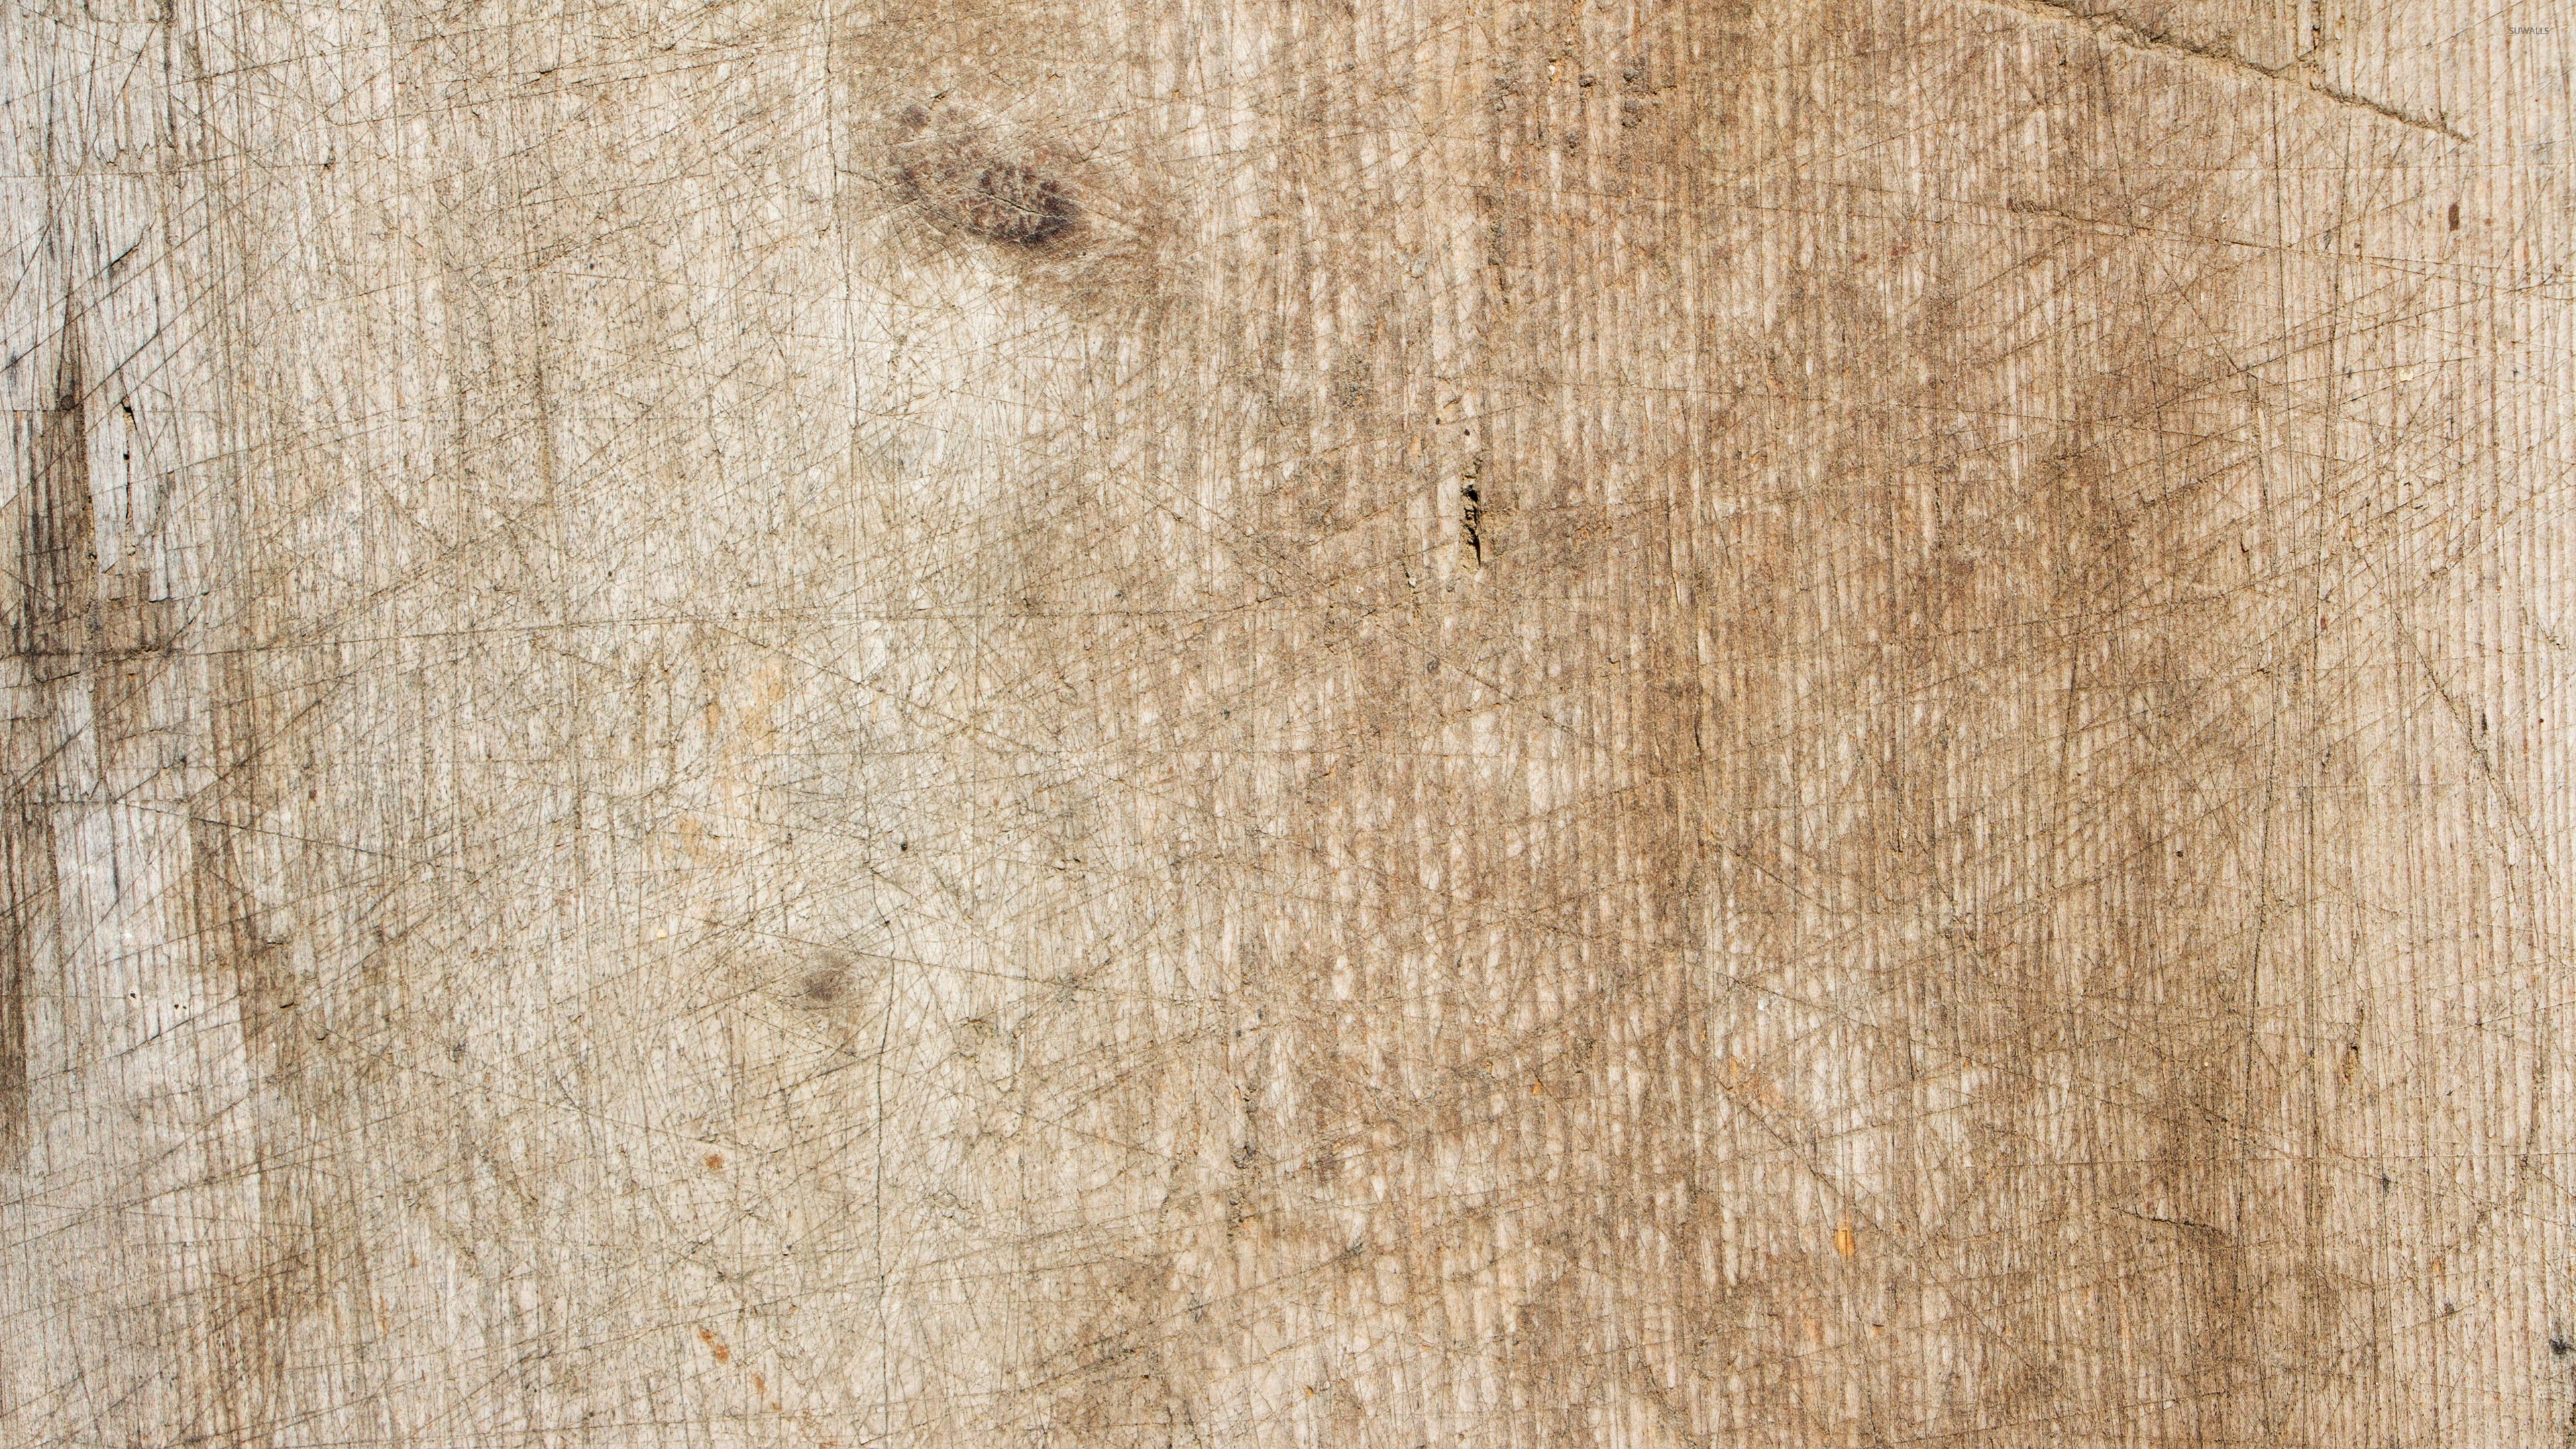 Scratches on old wood wallpaper - Photography wallpapers - #49852